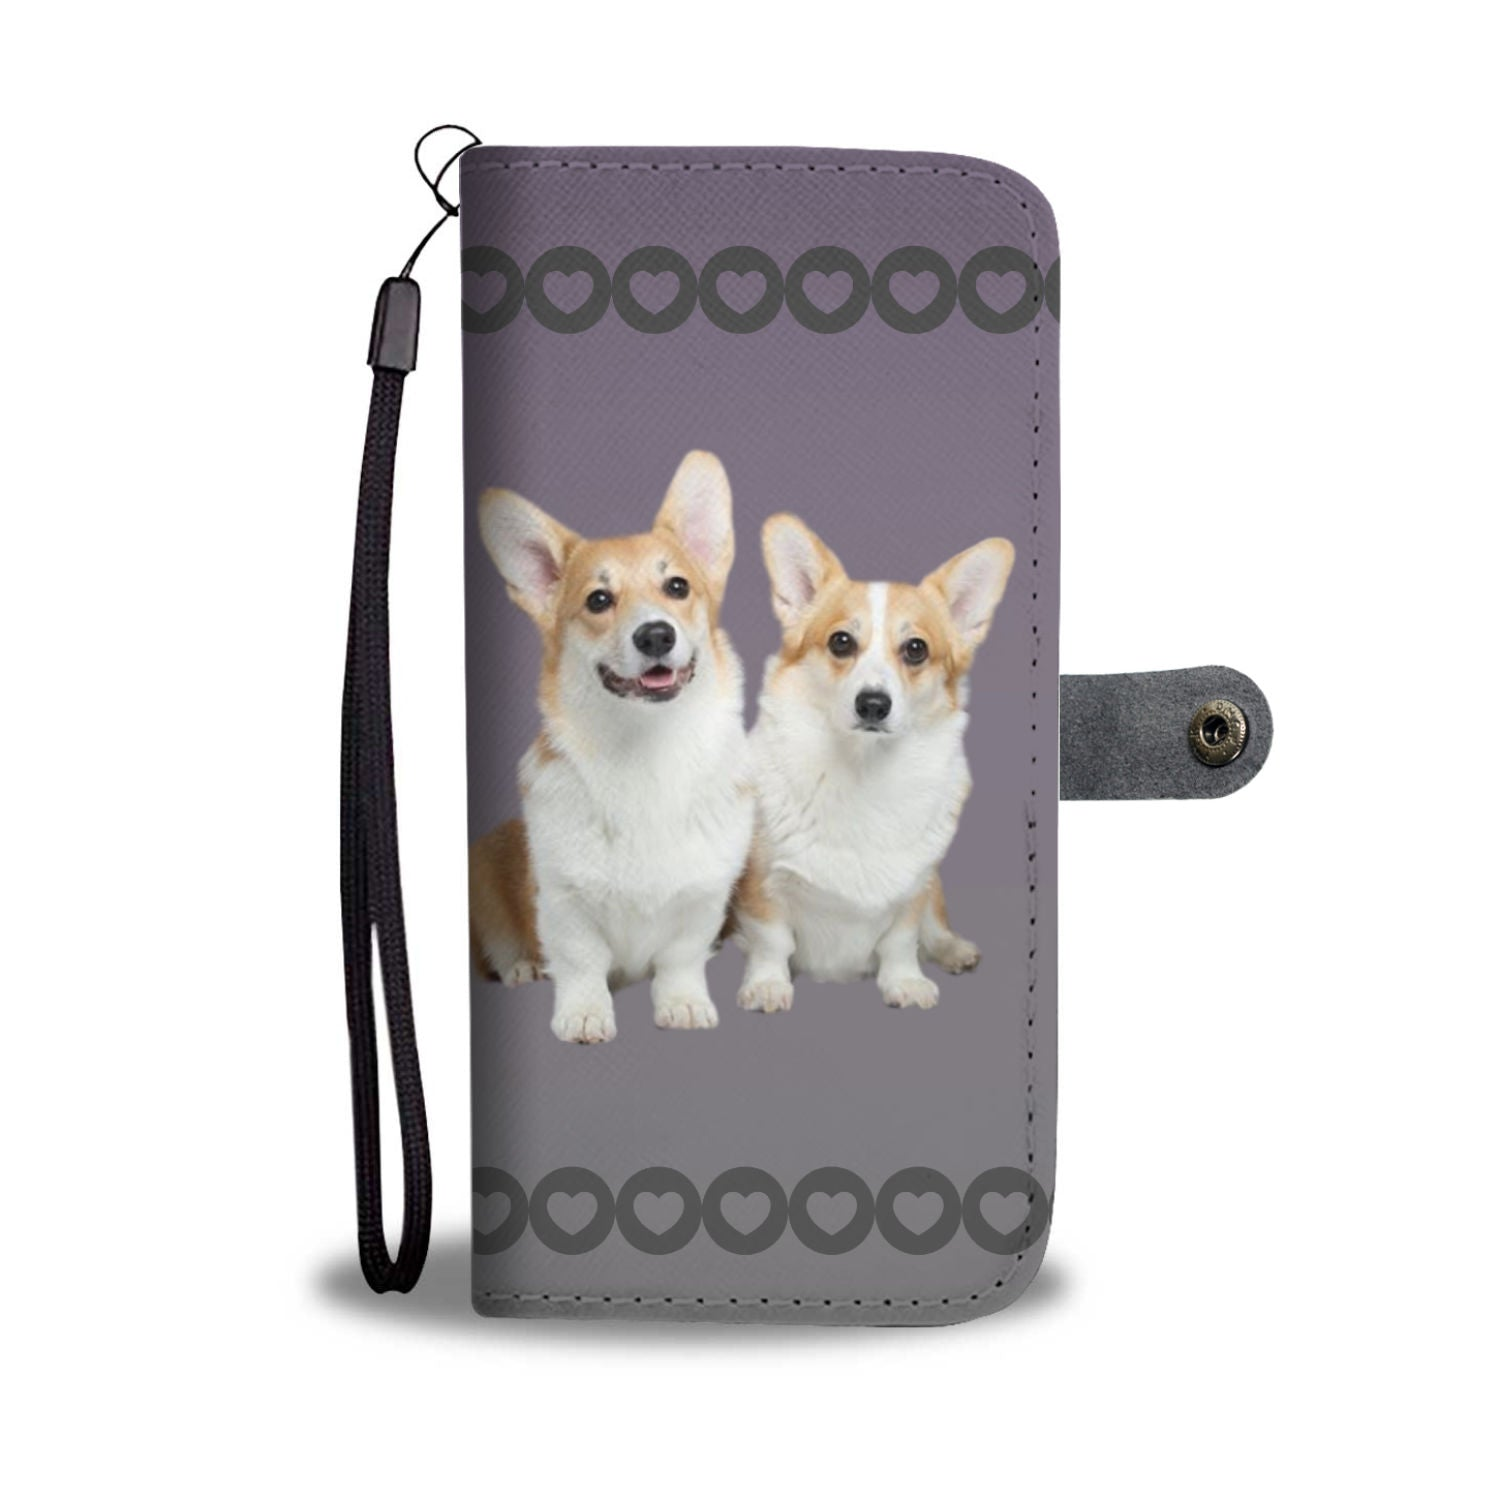 Corgi Phone Case Wallets